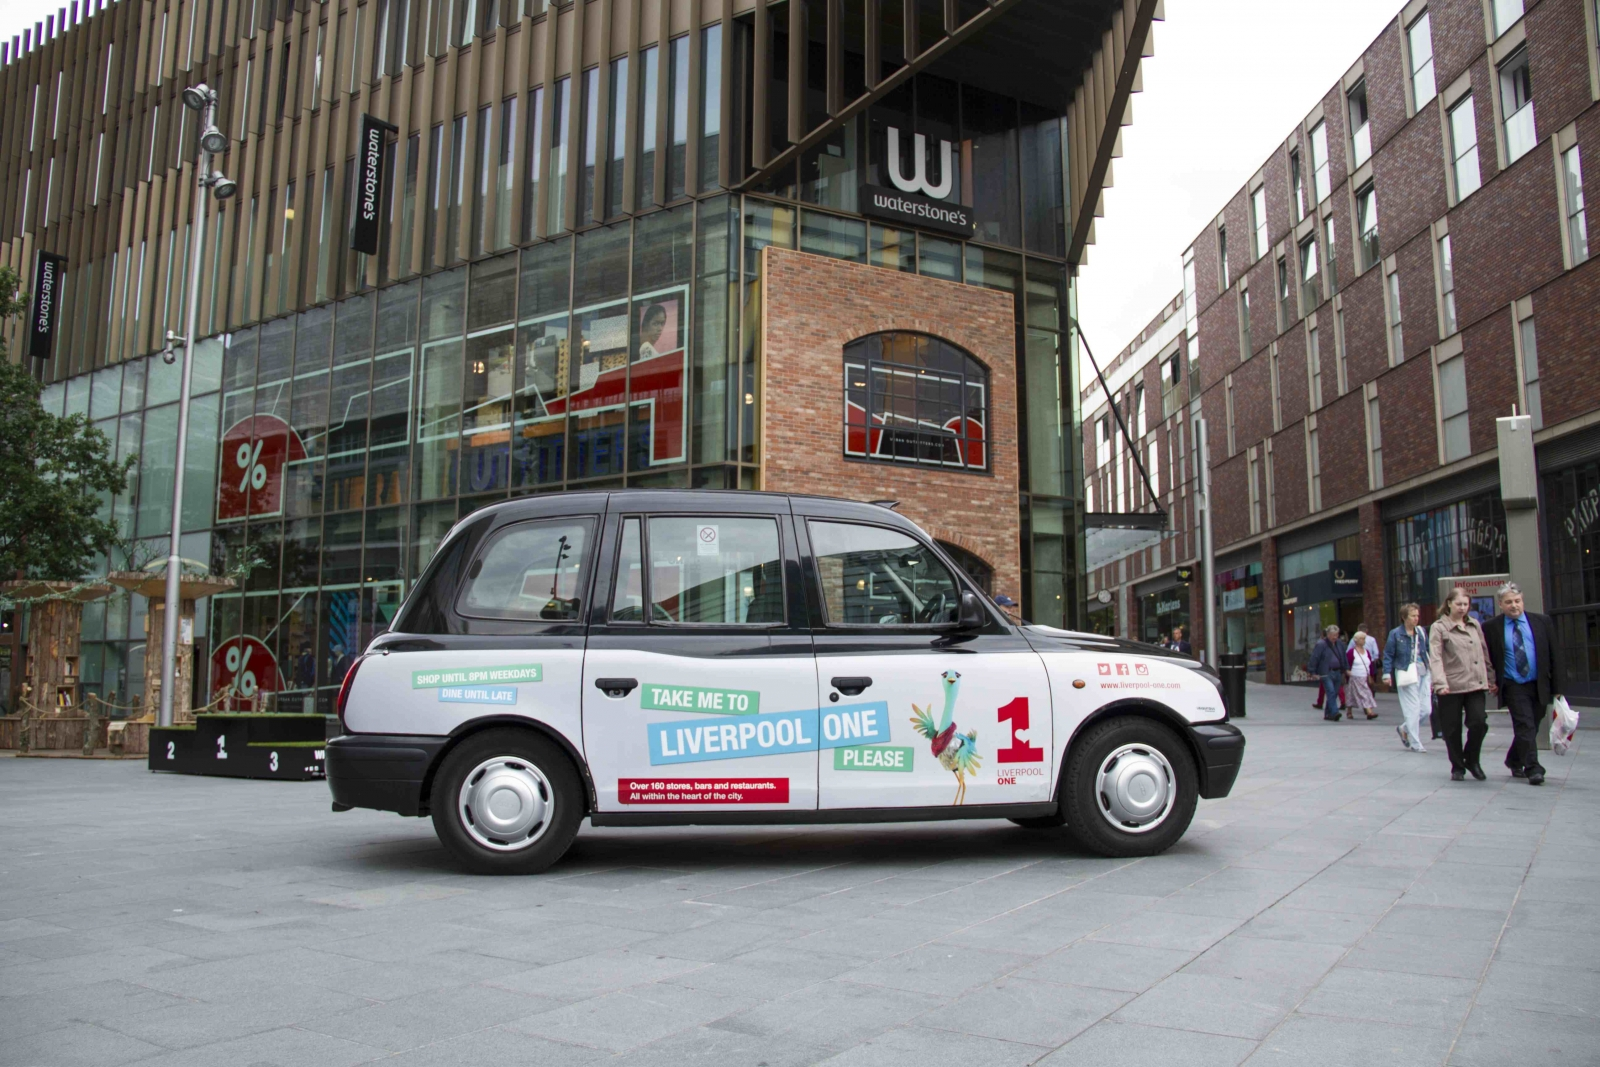 2014 Ubiquitous campaign for Liverpool One - Take Me To Liverpool One Please